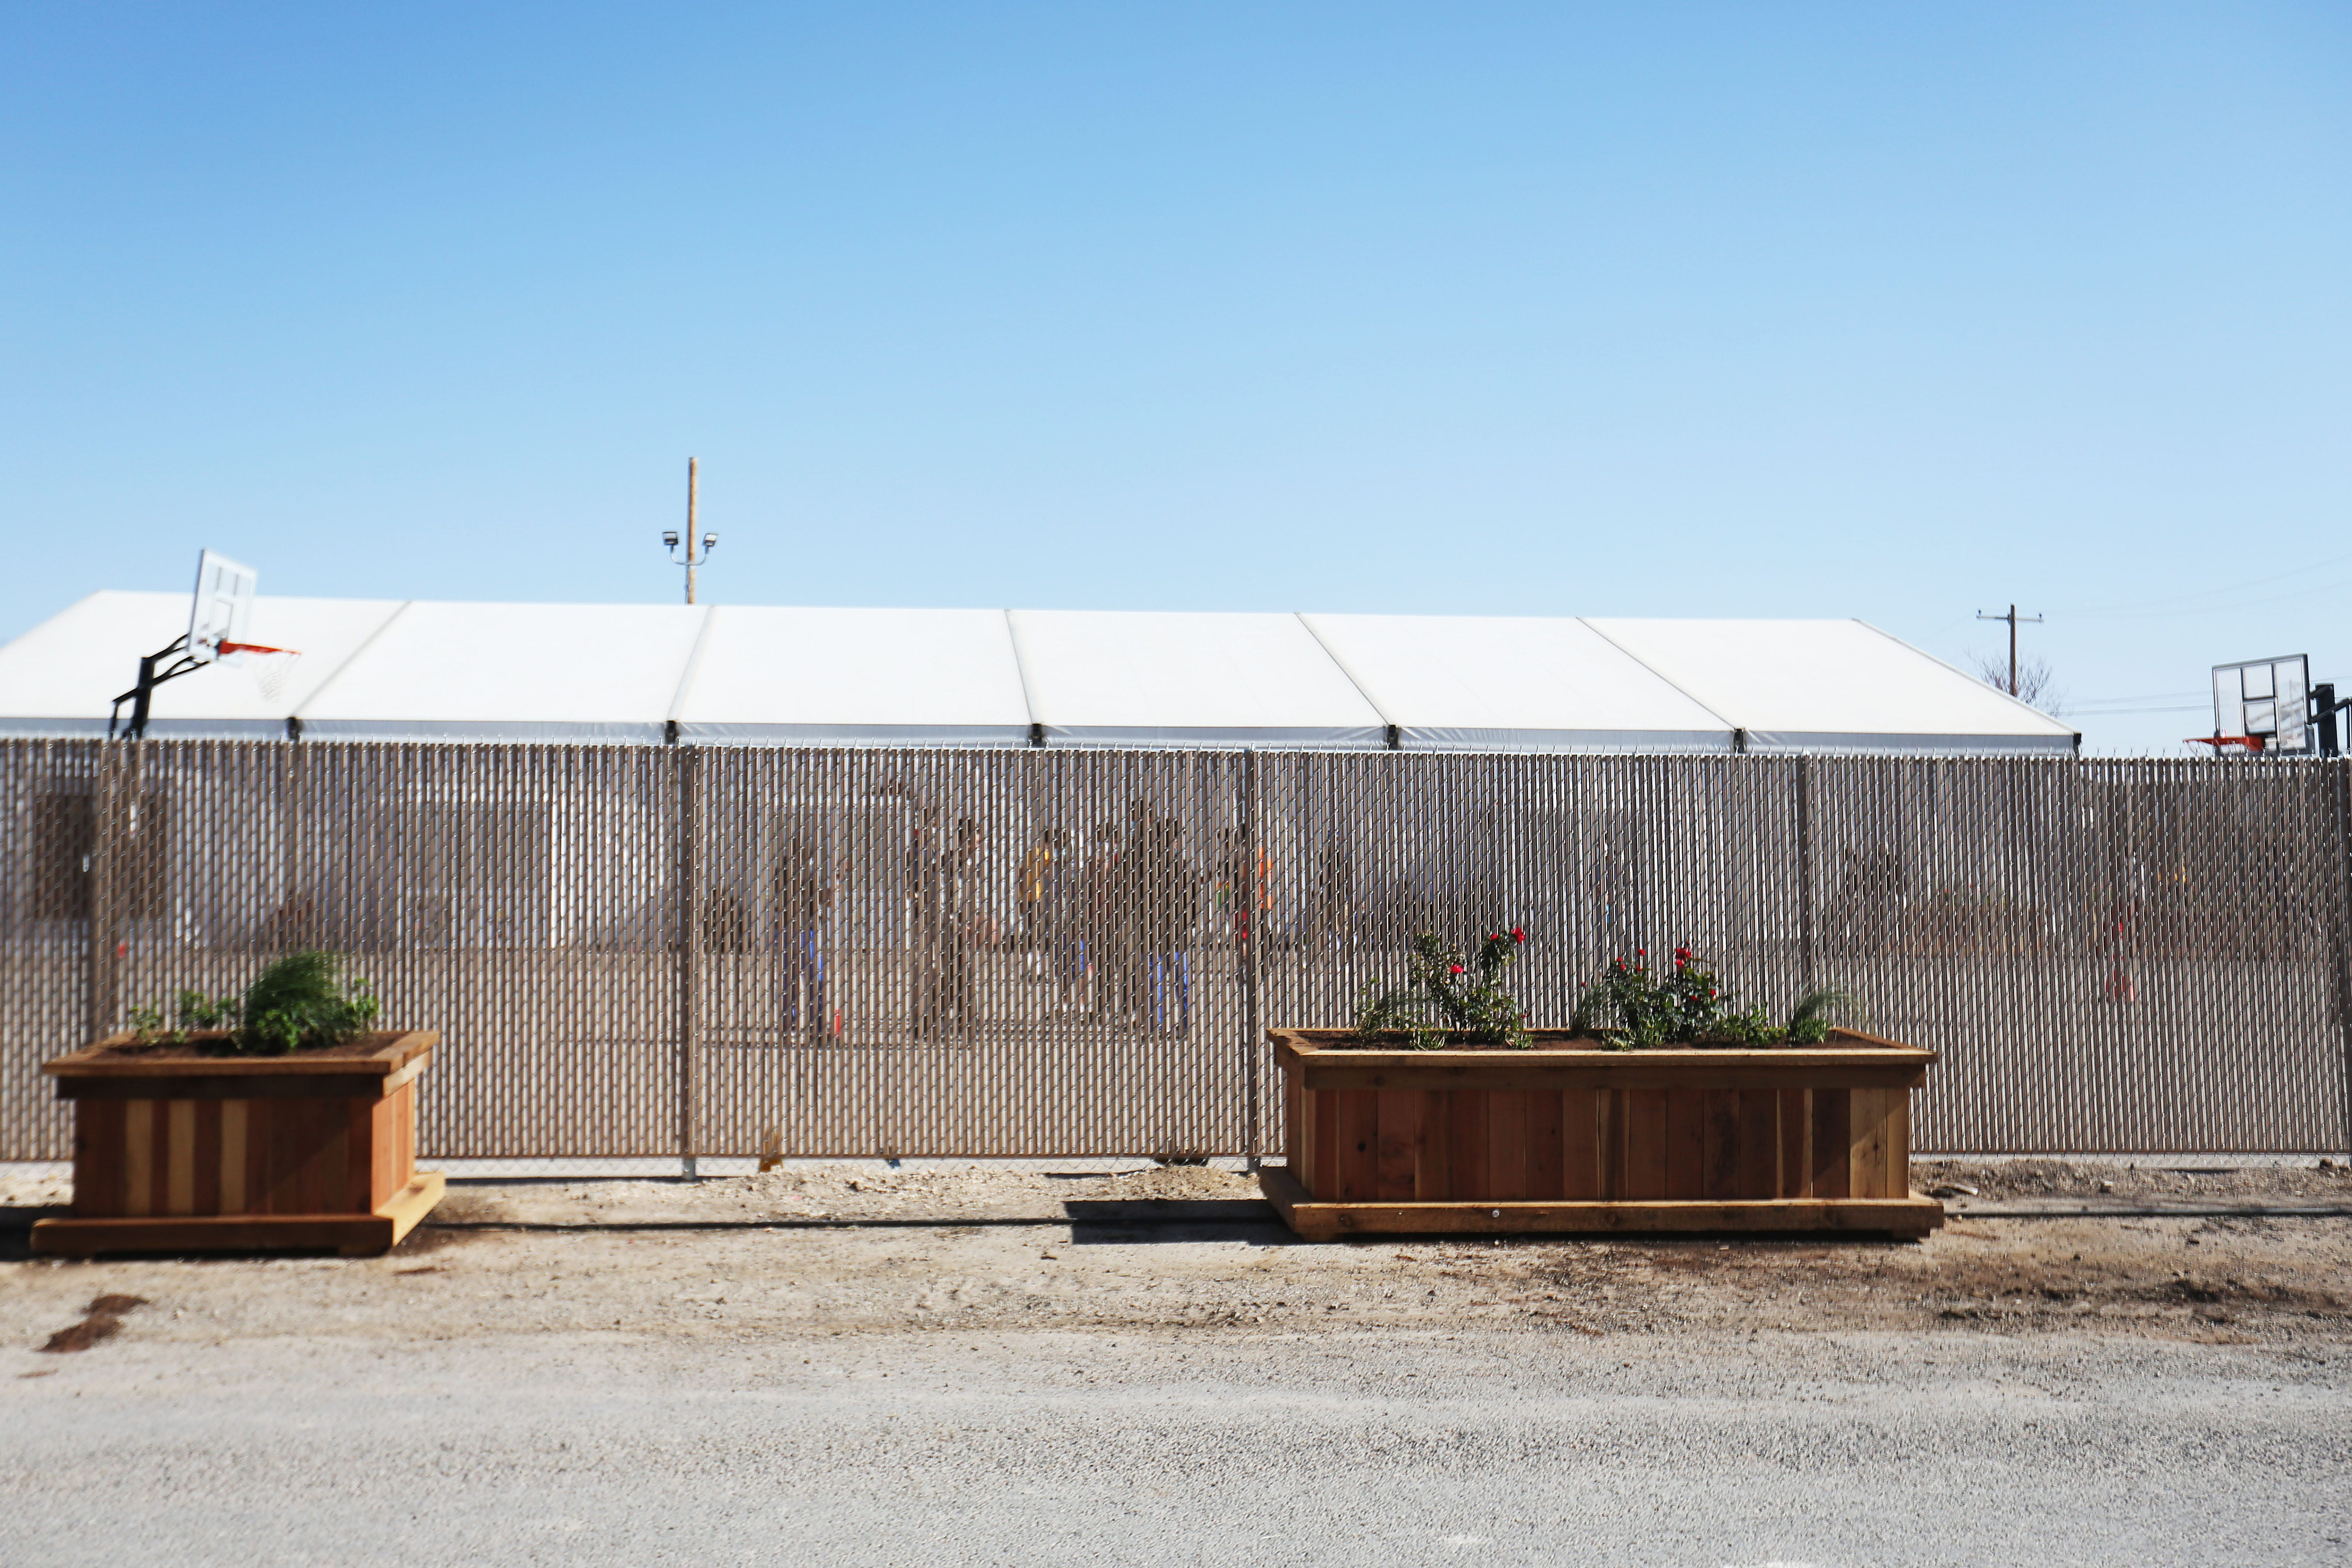 Migrant children play outside at a shelter for unaccompanied minors Friday, April 9, 2021, in Pecos. The property is owned by Target Hospitality. It was formally being used by oil field workers for lodging while at a job worksite. It is now housing migrant children.